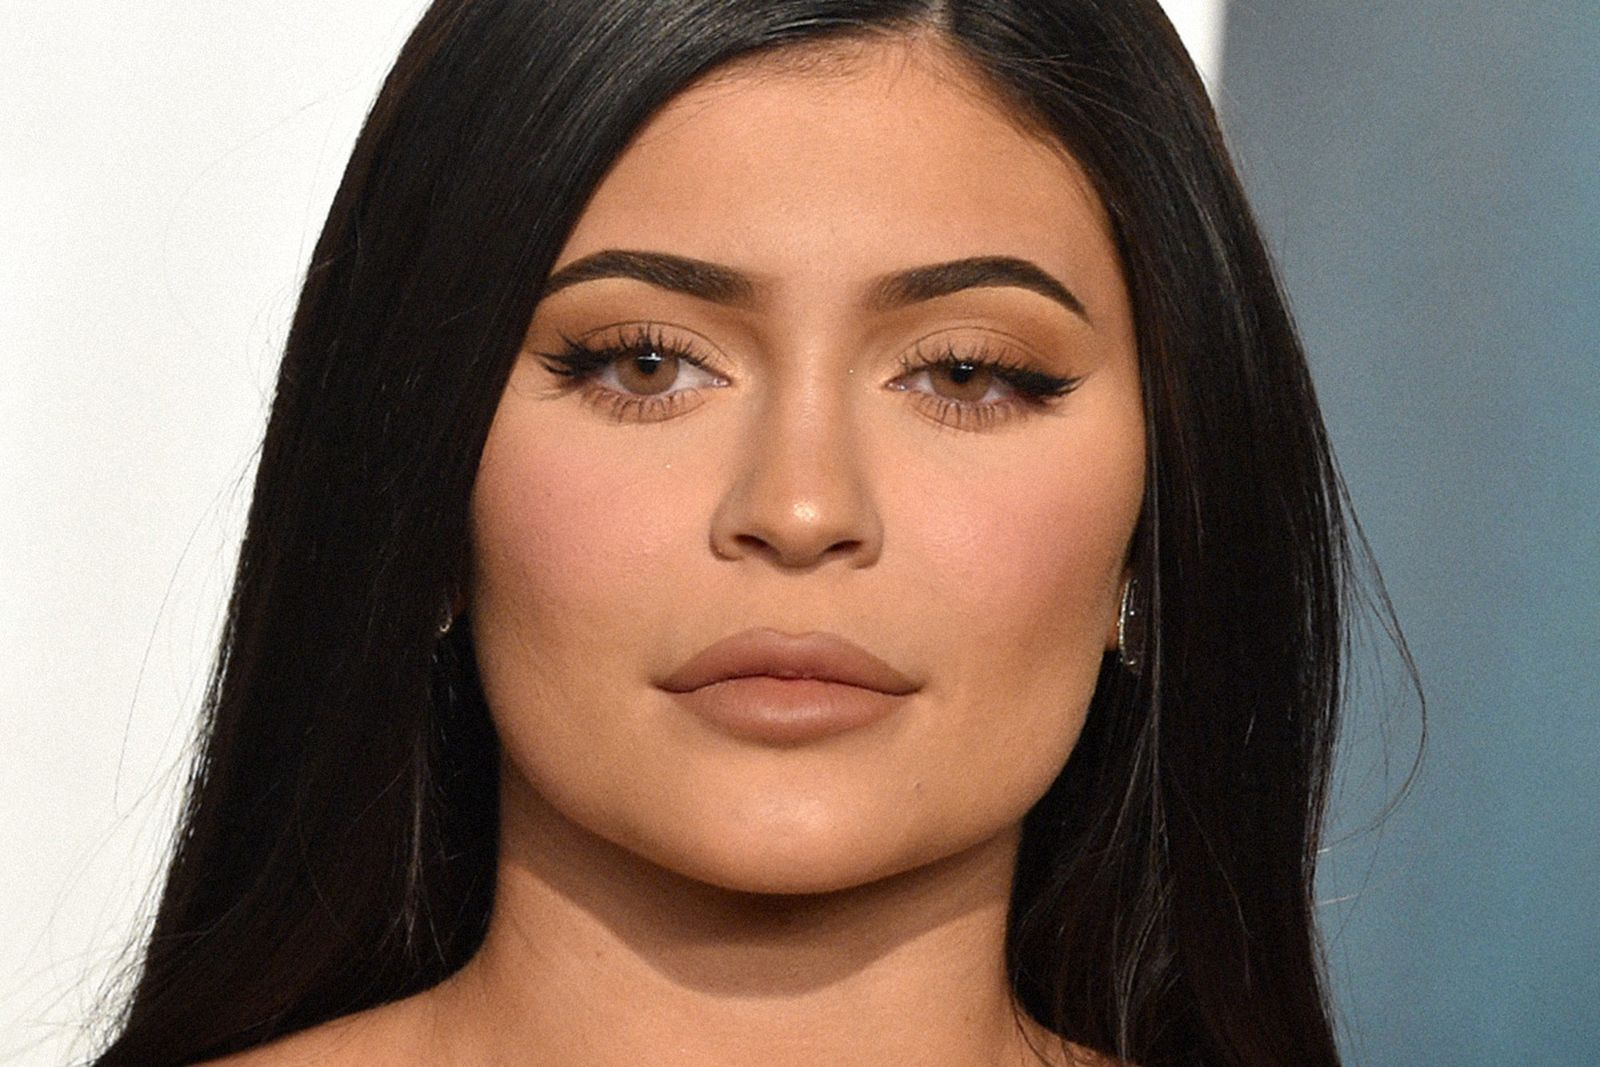 forbes-celebrity-rich-list-2020-kylie-jenner-02